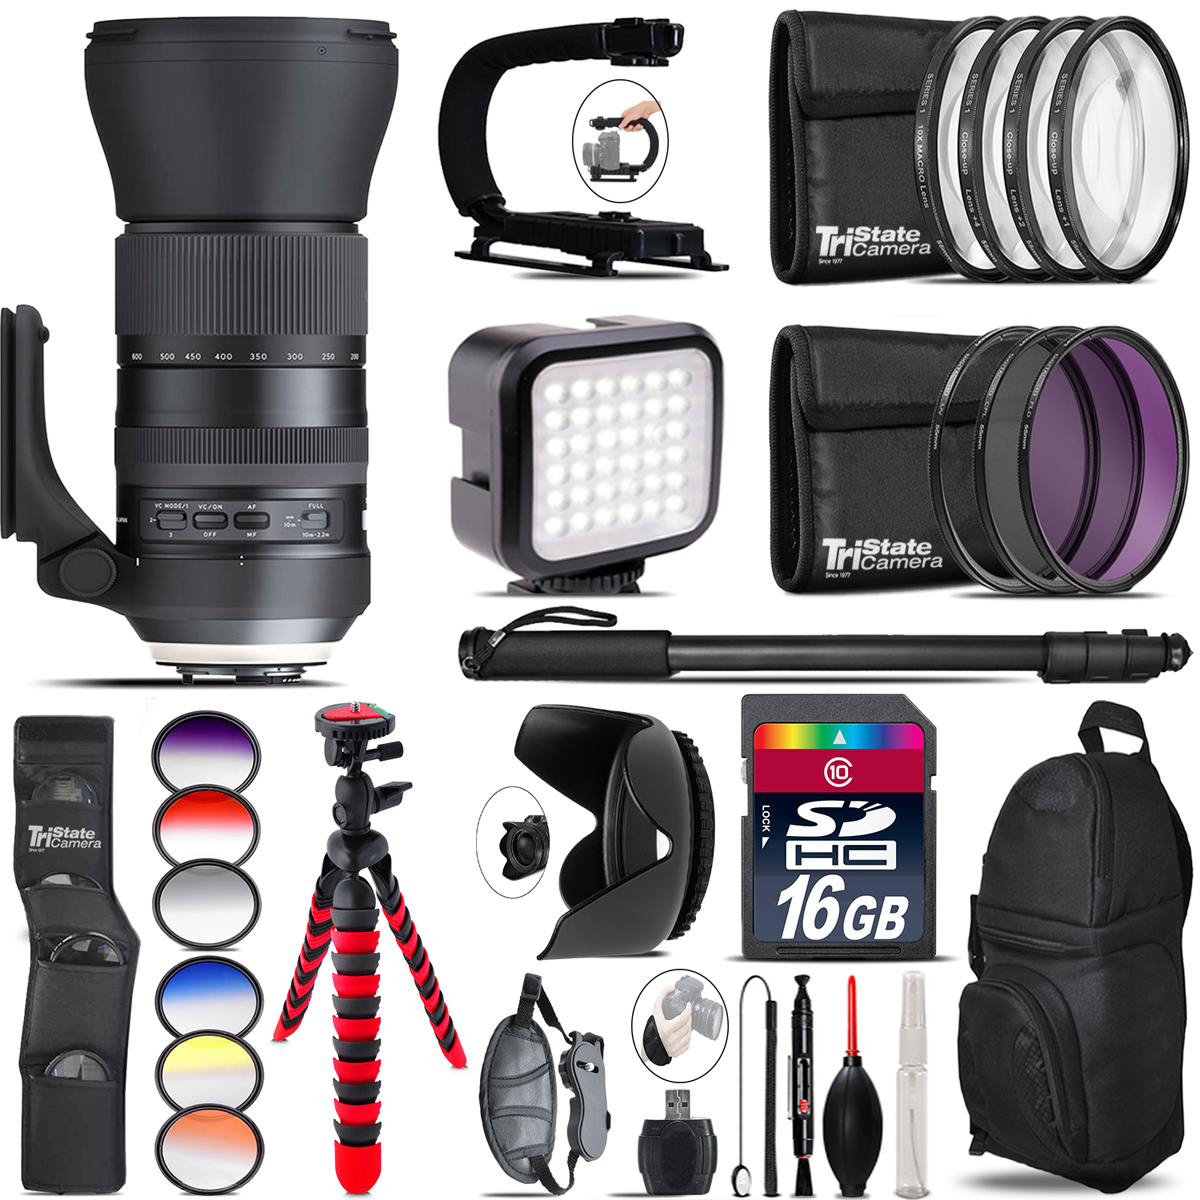 Tamron 150-600mm G2 for Canon - Video Kit + Color Filter - 16GB Accessory Kit *FREE SHIPPING*